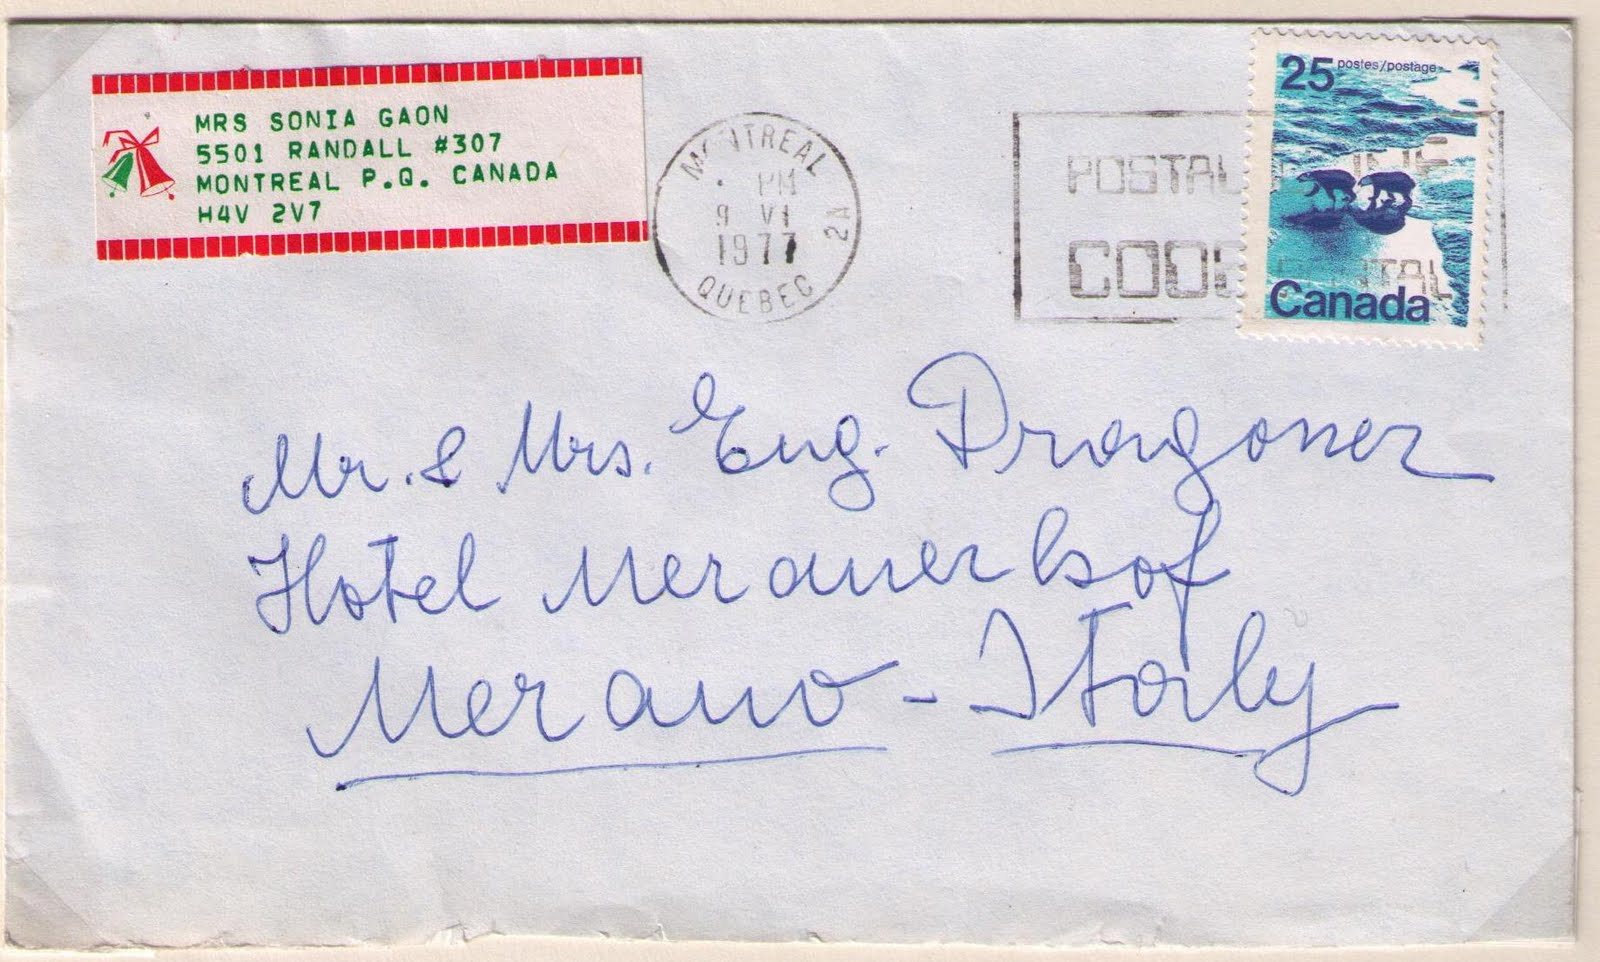 25 cents international letter rate